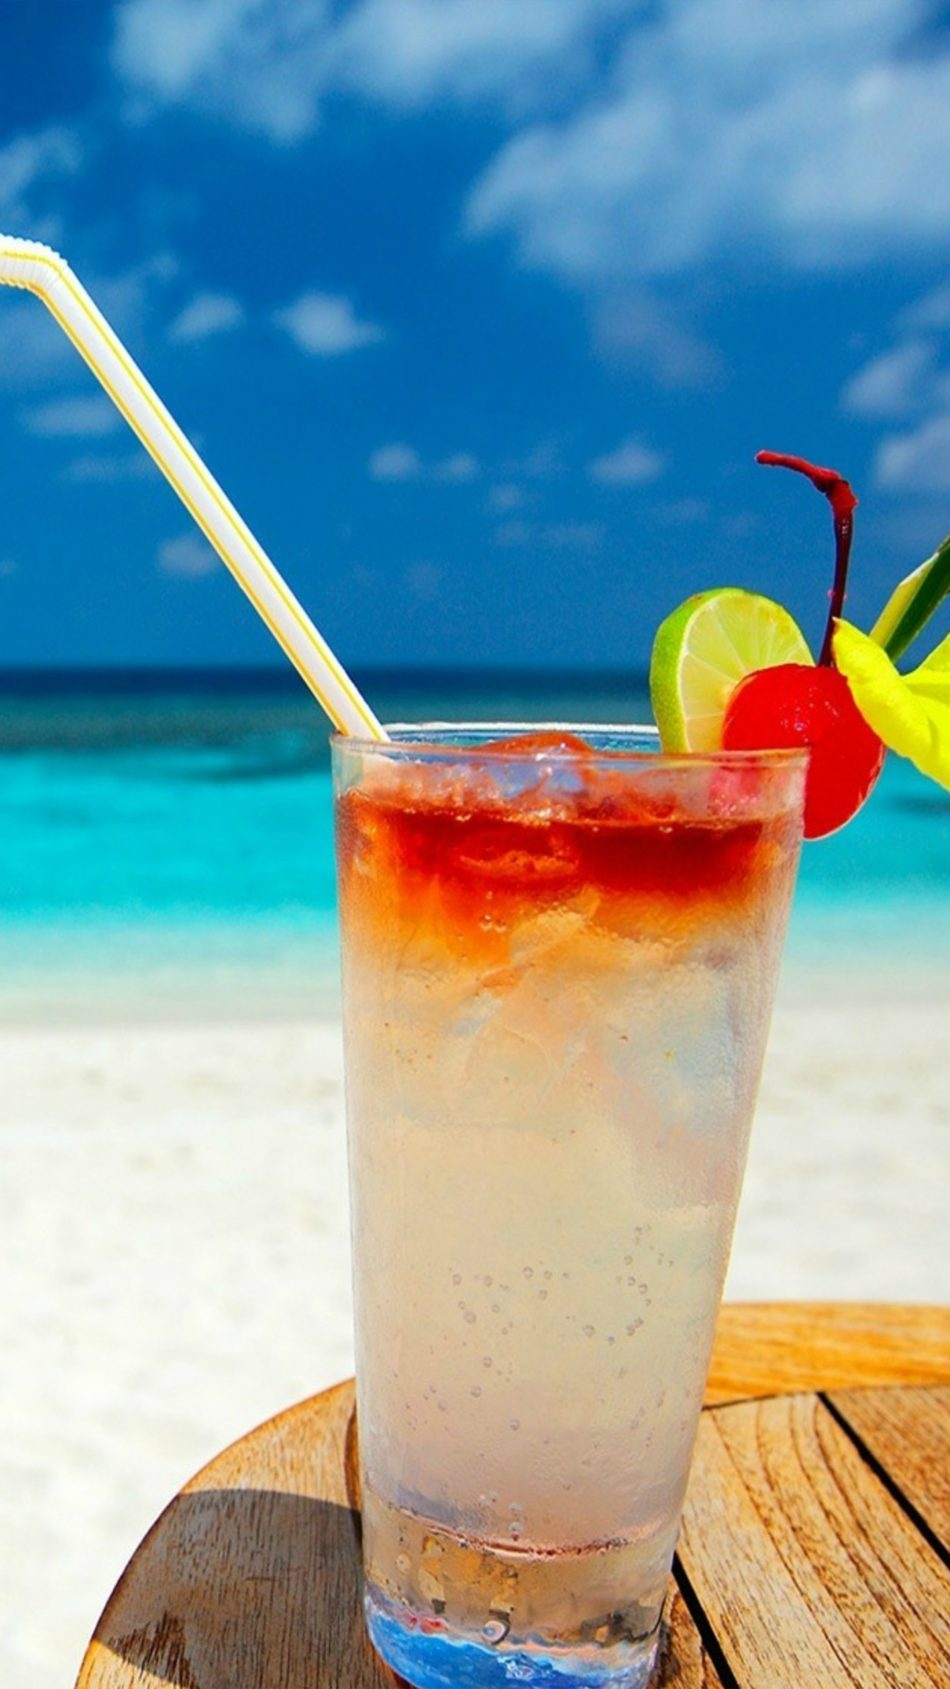 Cocktail Beach 4K Ultra HD Mobile Wallpaper